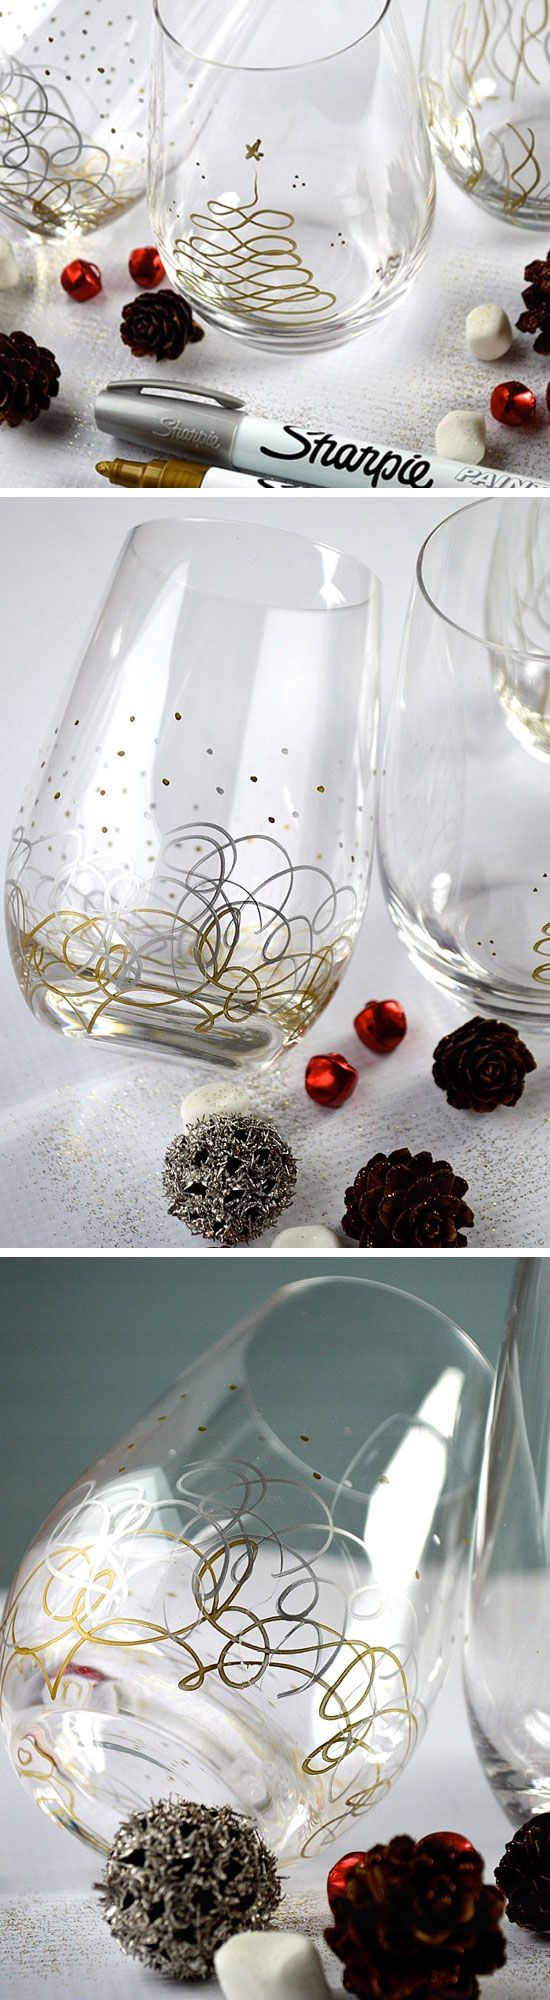 159 best christmas crafts images on pinterest diy for Homemade christmas gifts for friends